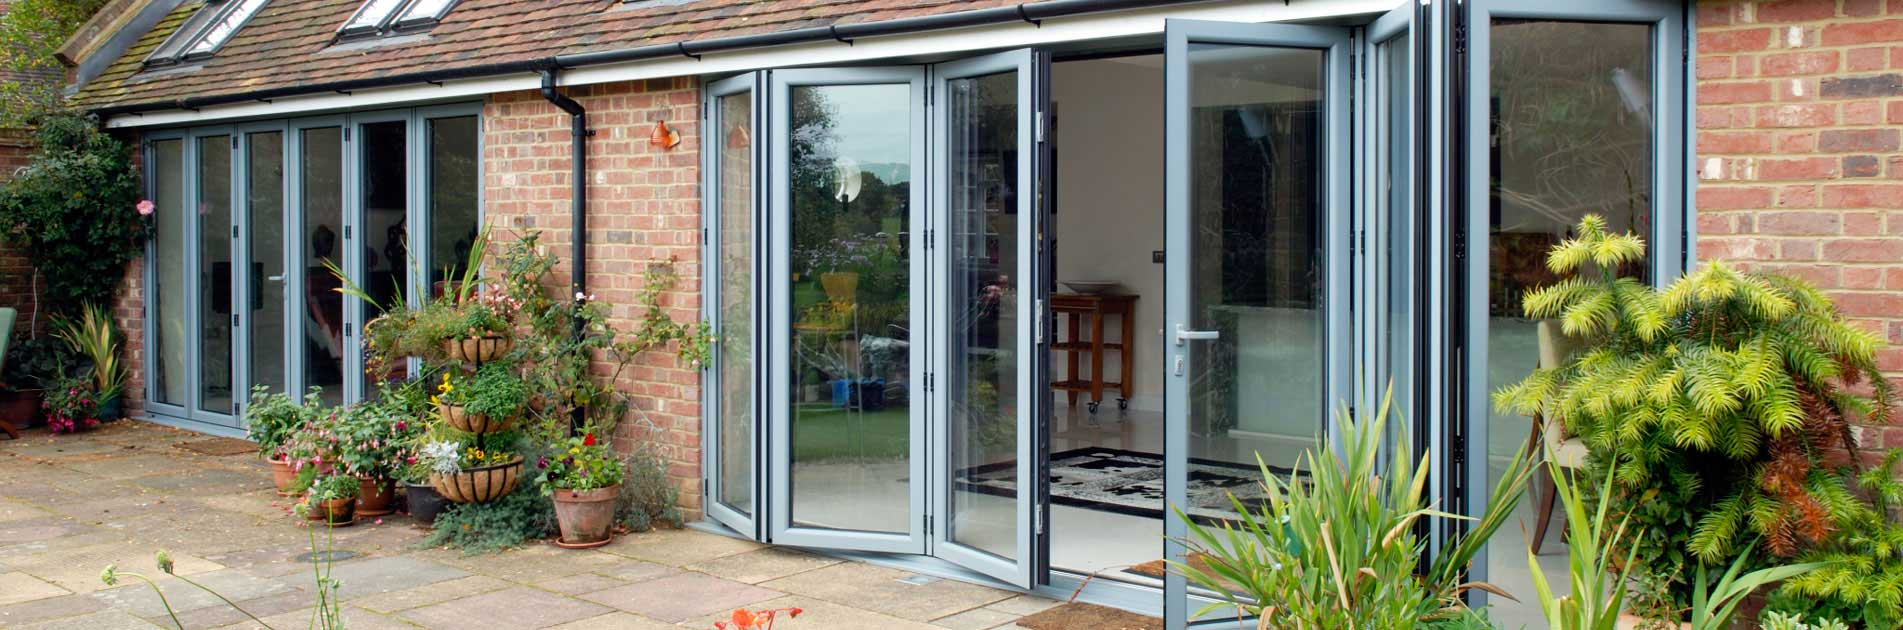 How to Re-Invent Room Space and Let the Light in With Bifold Doors